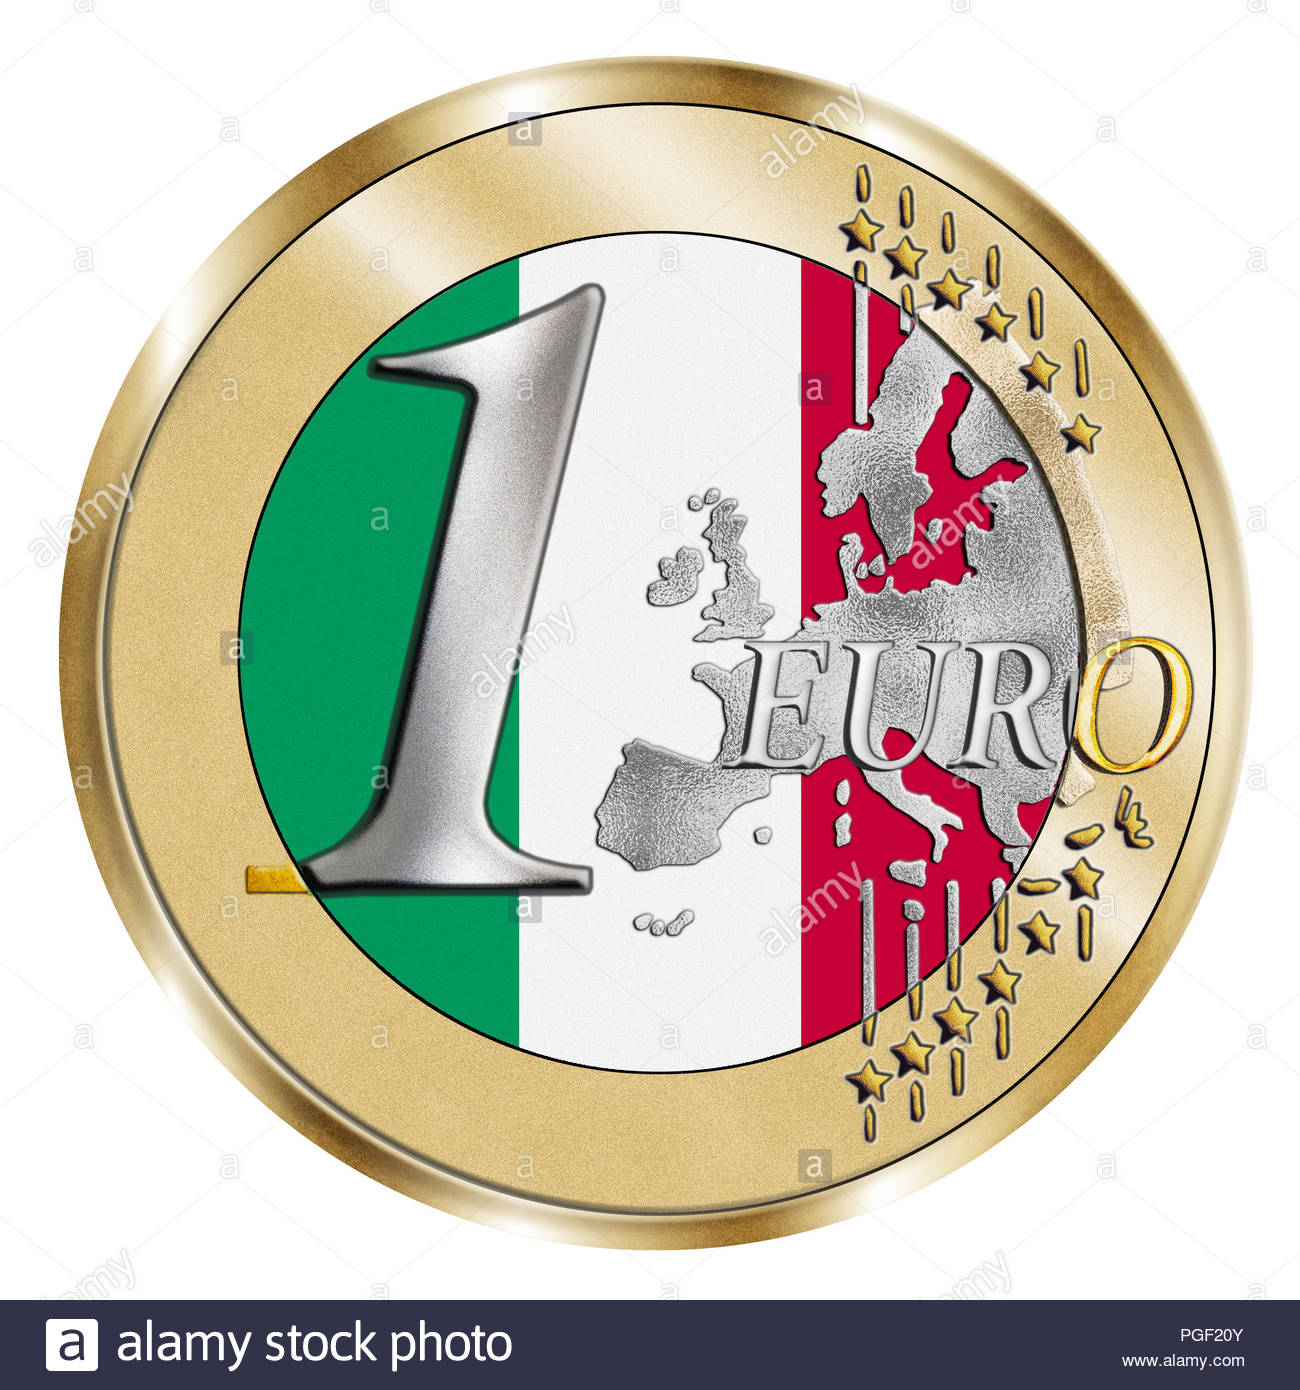 A montage of a stylised 1 Euro coin and an Italian  flag. A Photoshop composite with inlaid grain emphasises the vivid silver and gold effect . - Stock Image